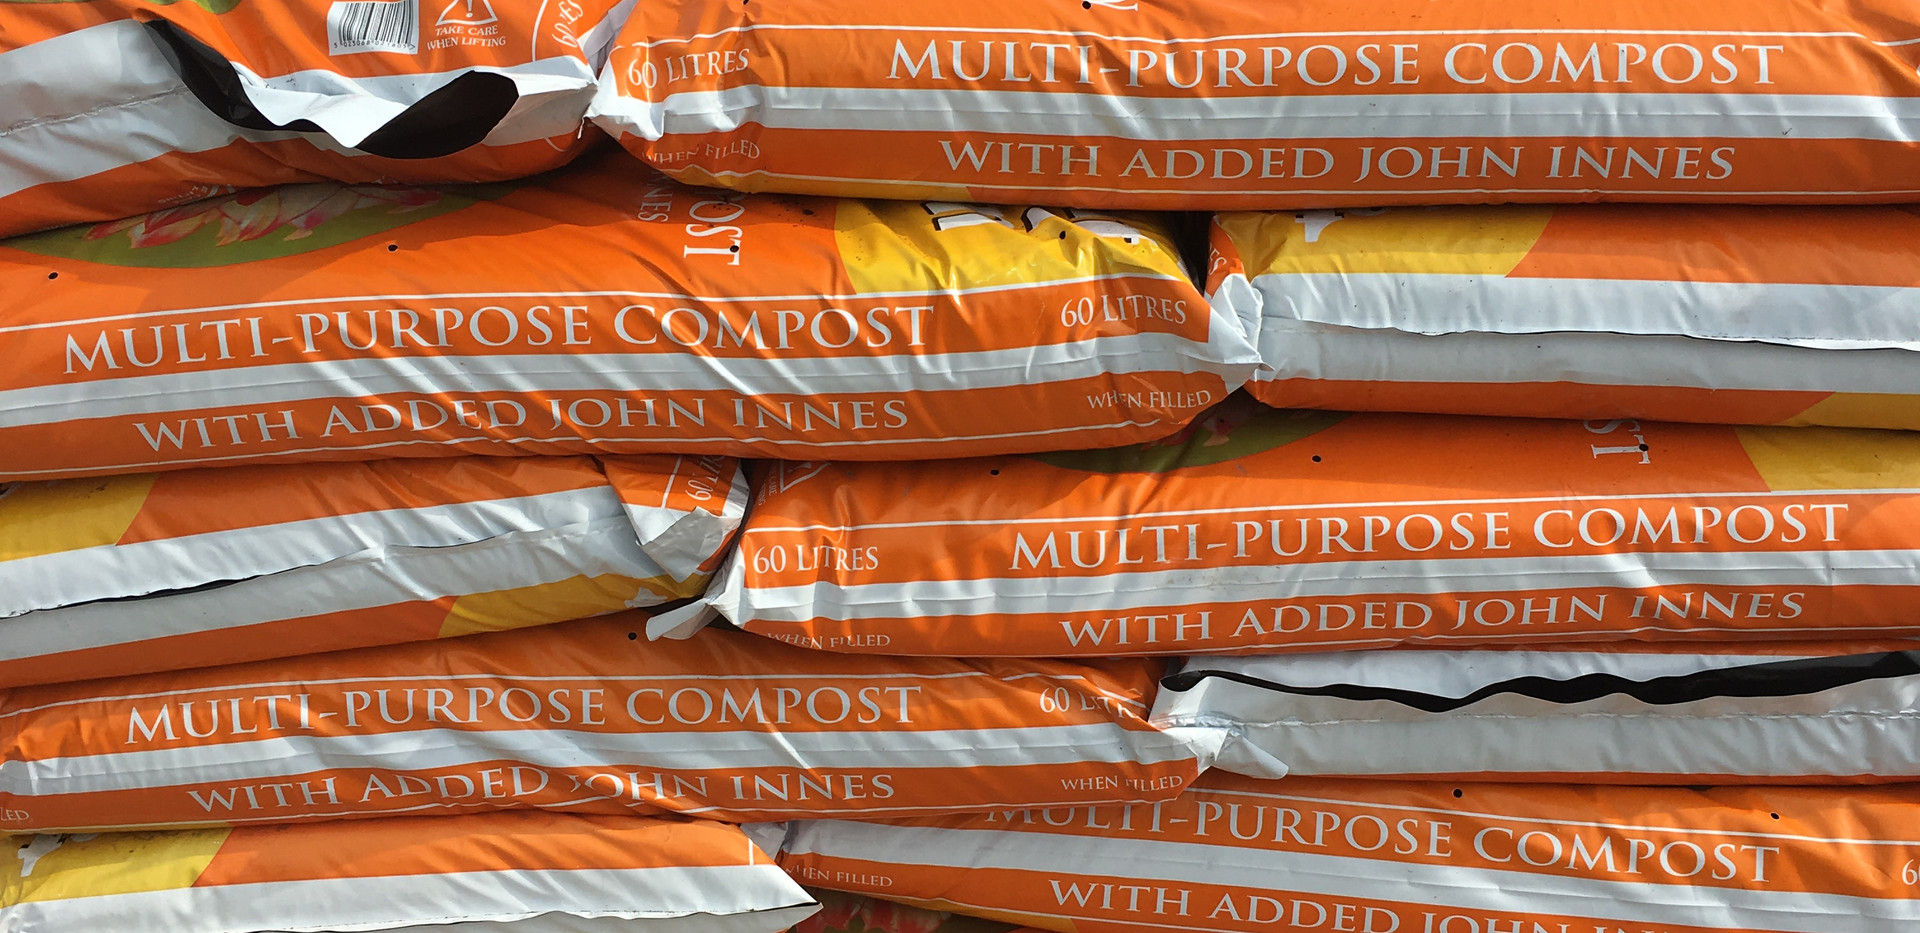 Multi-Purpost Compost with added John Innes